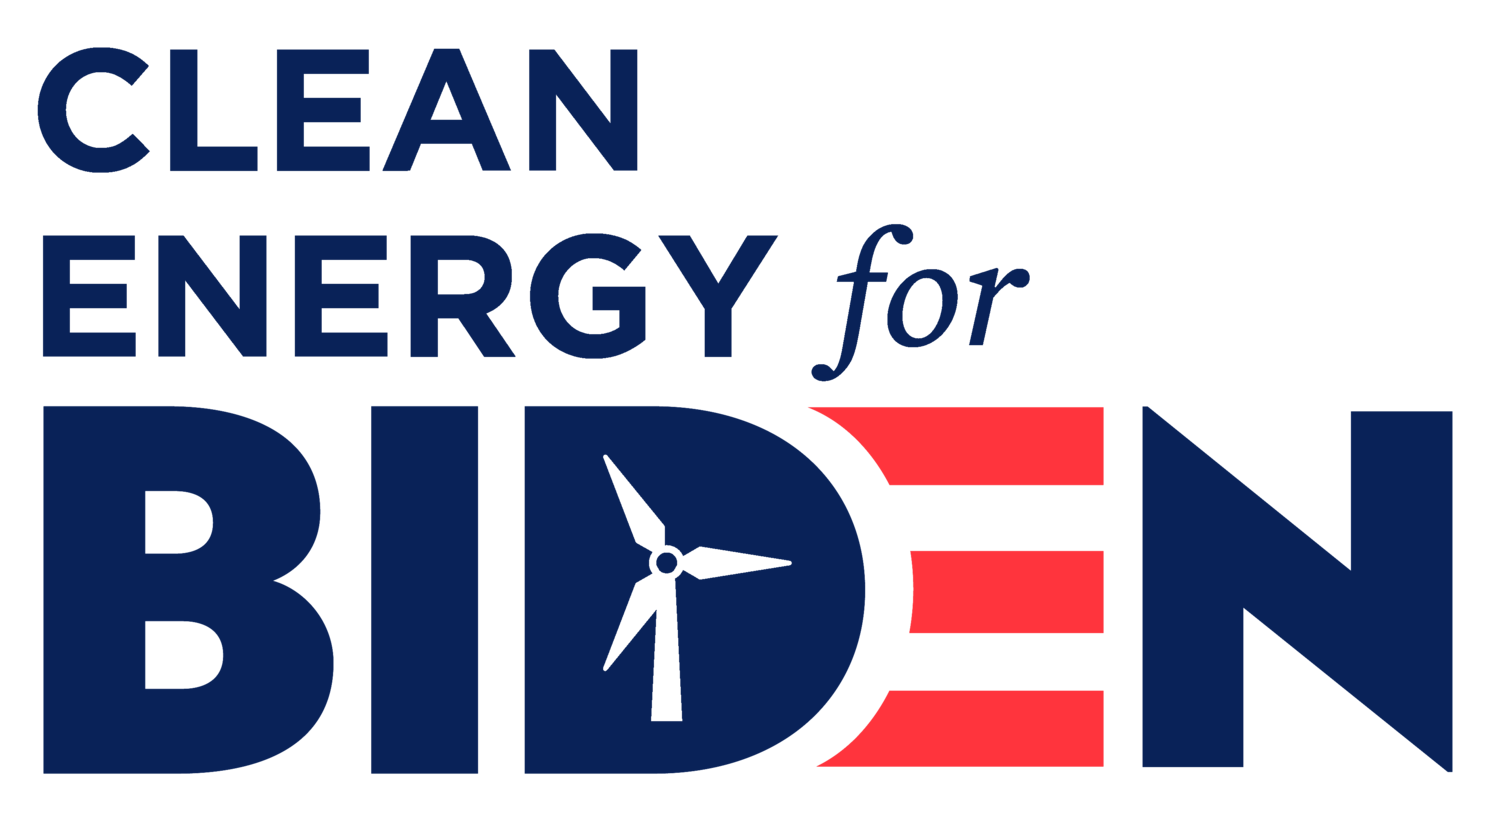 Clean Energy For Biden logo